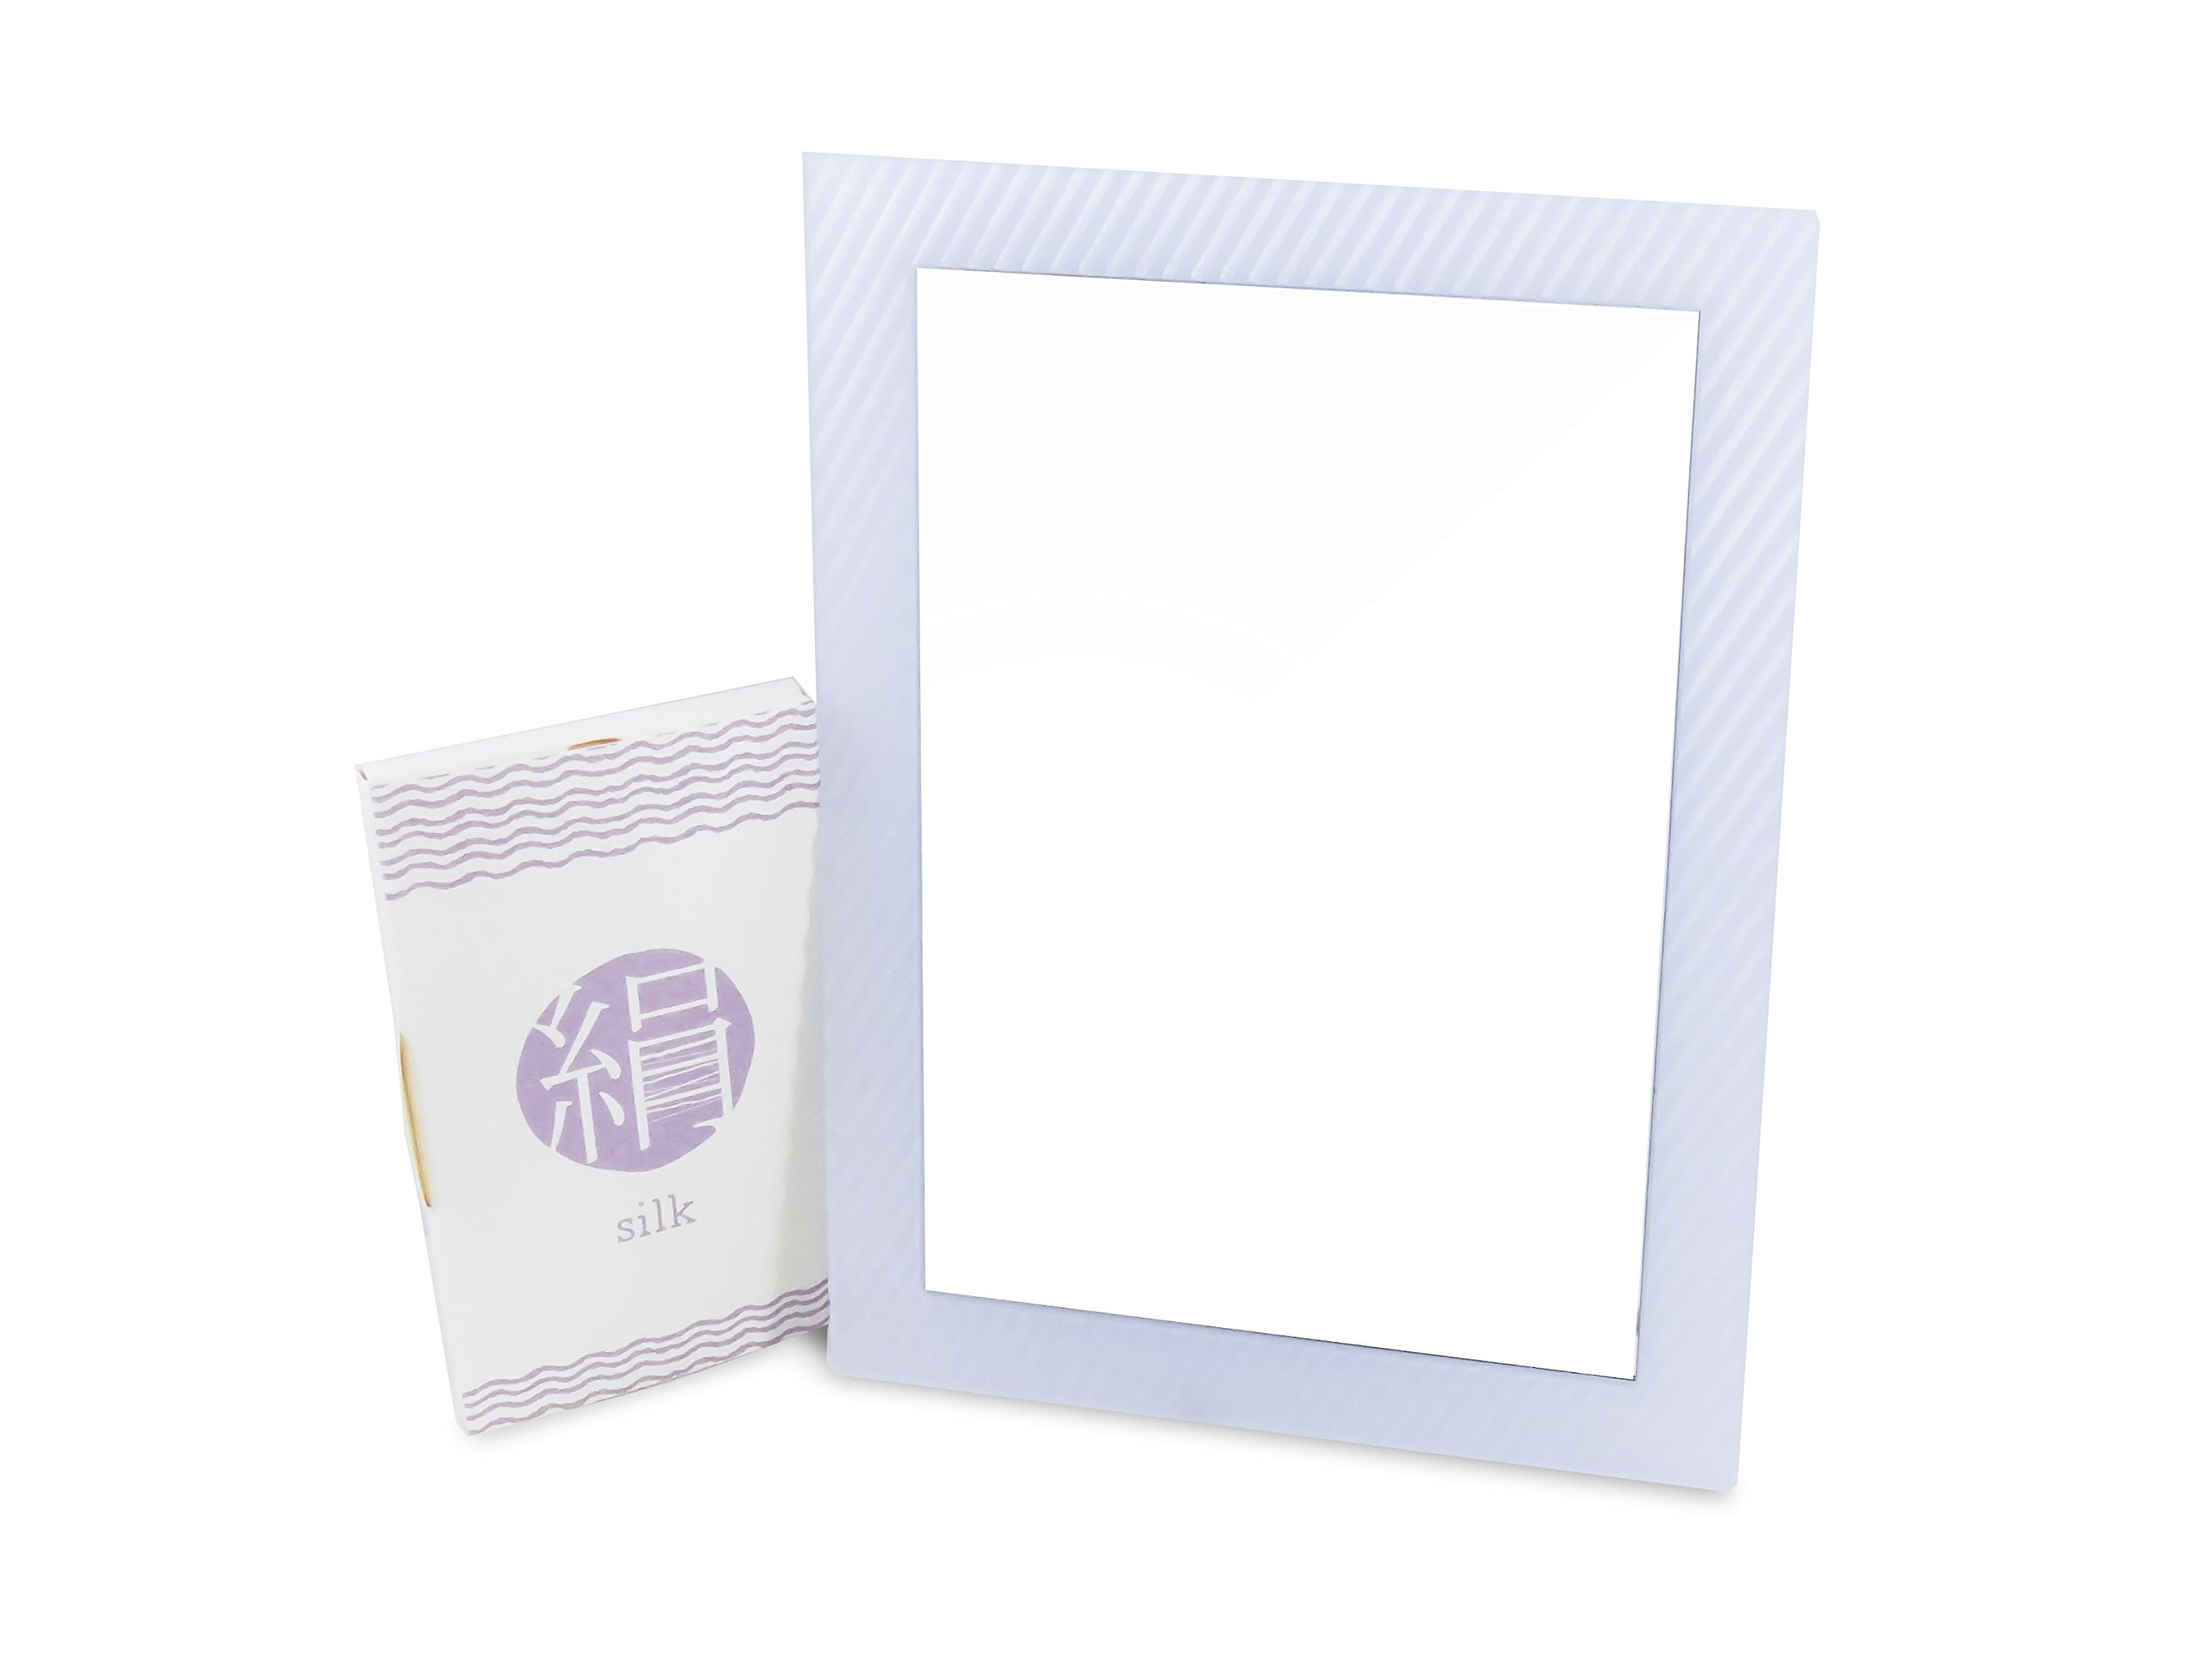 Locker Makeup Glass Mirror Rectangular White 6.25'' x 4.75'' Magnetic with Silk Blotting Absorbing Oil Paper 100 Sheets (2 Piece Set)